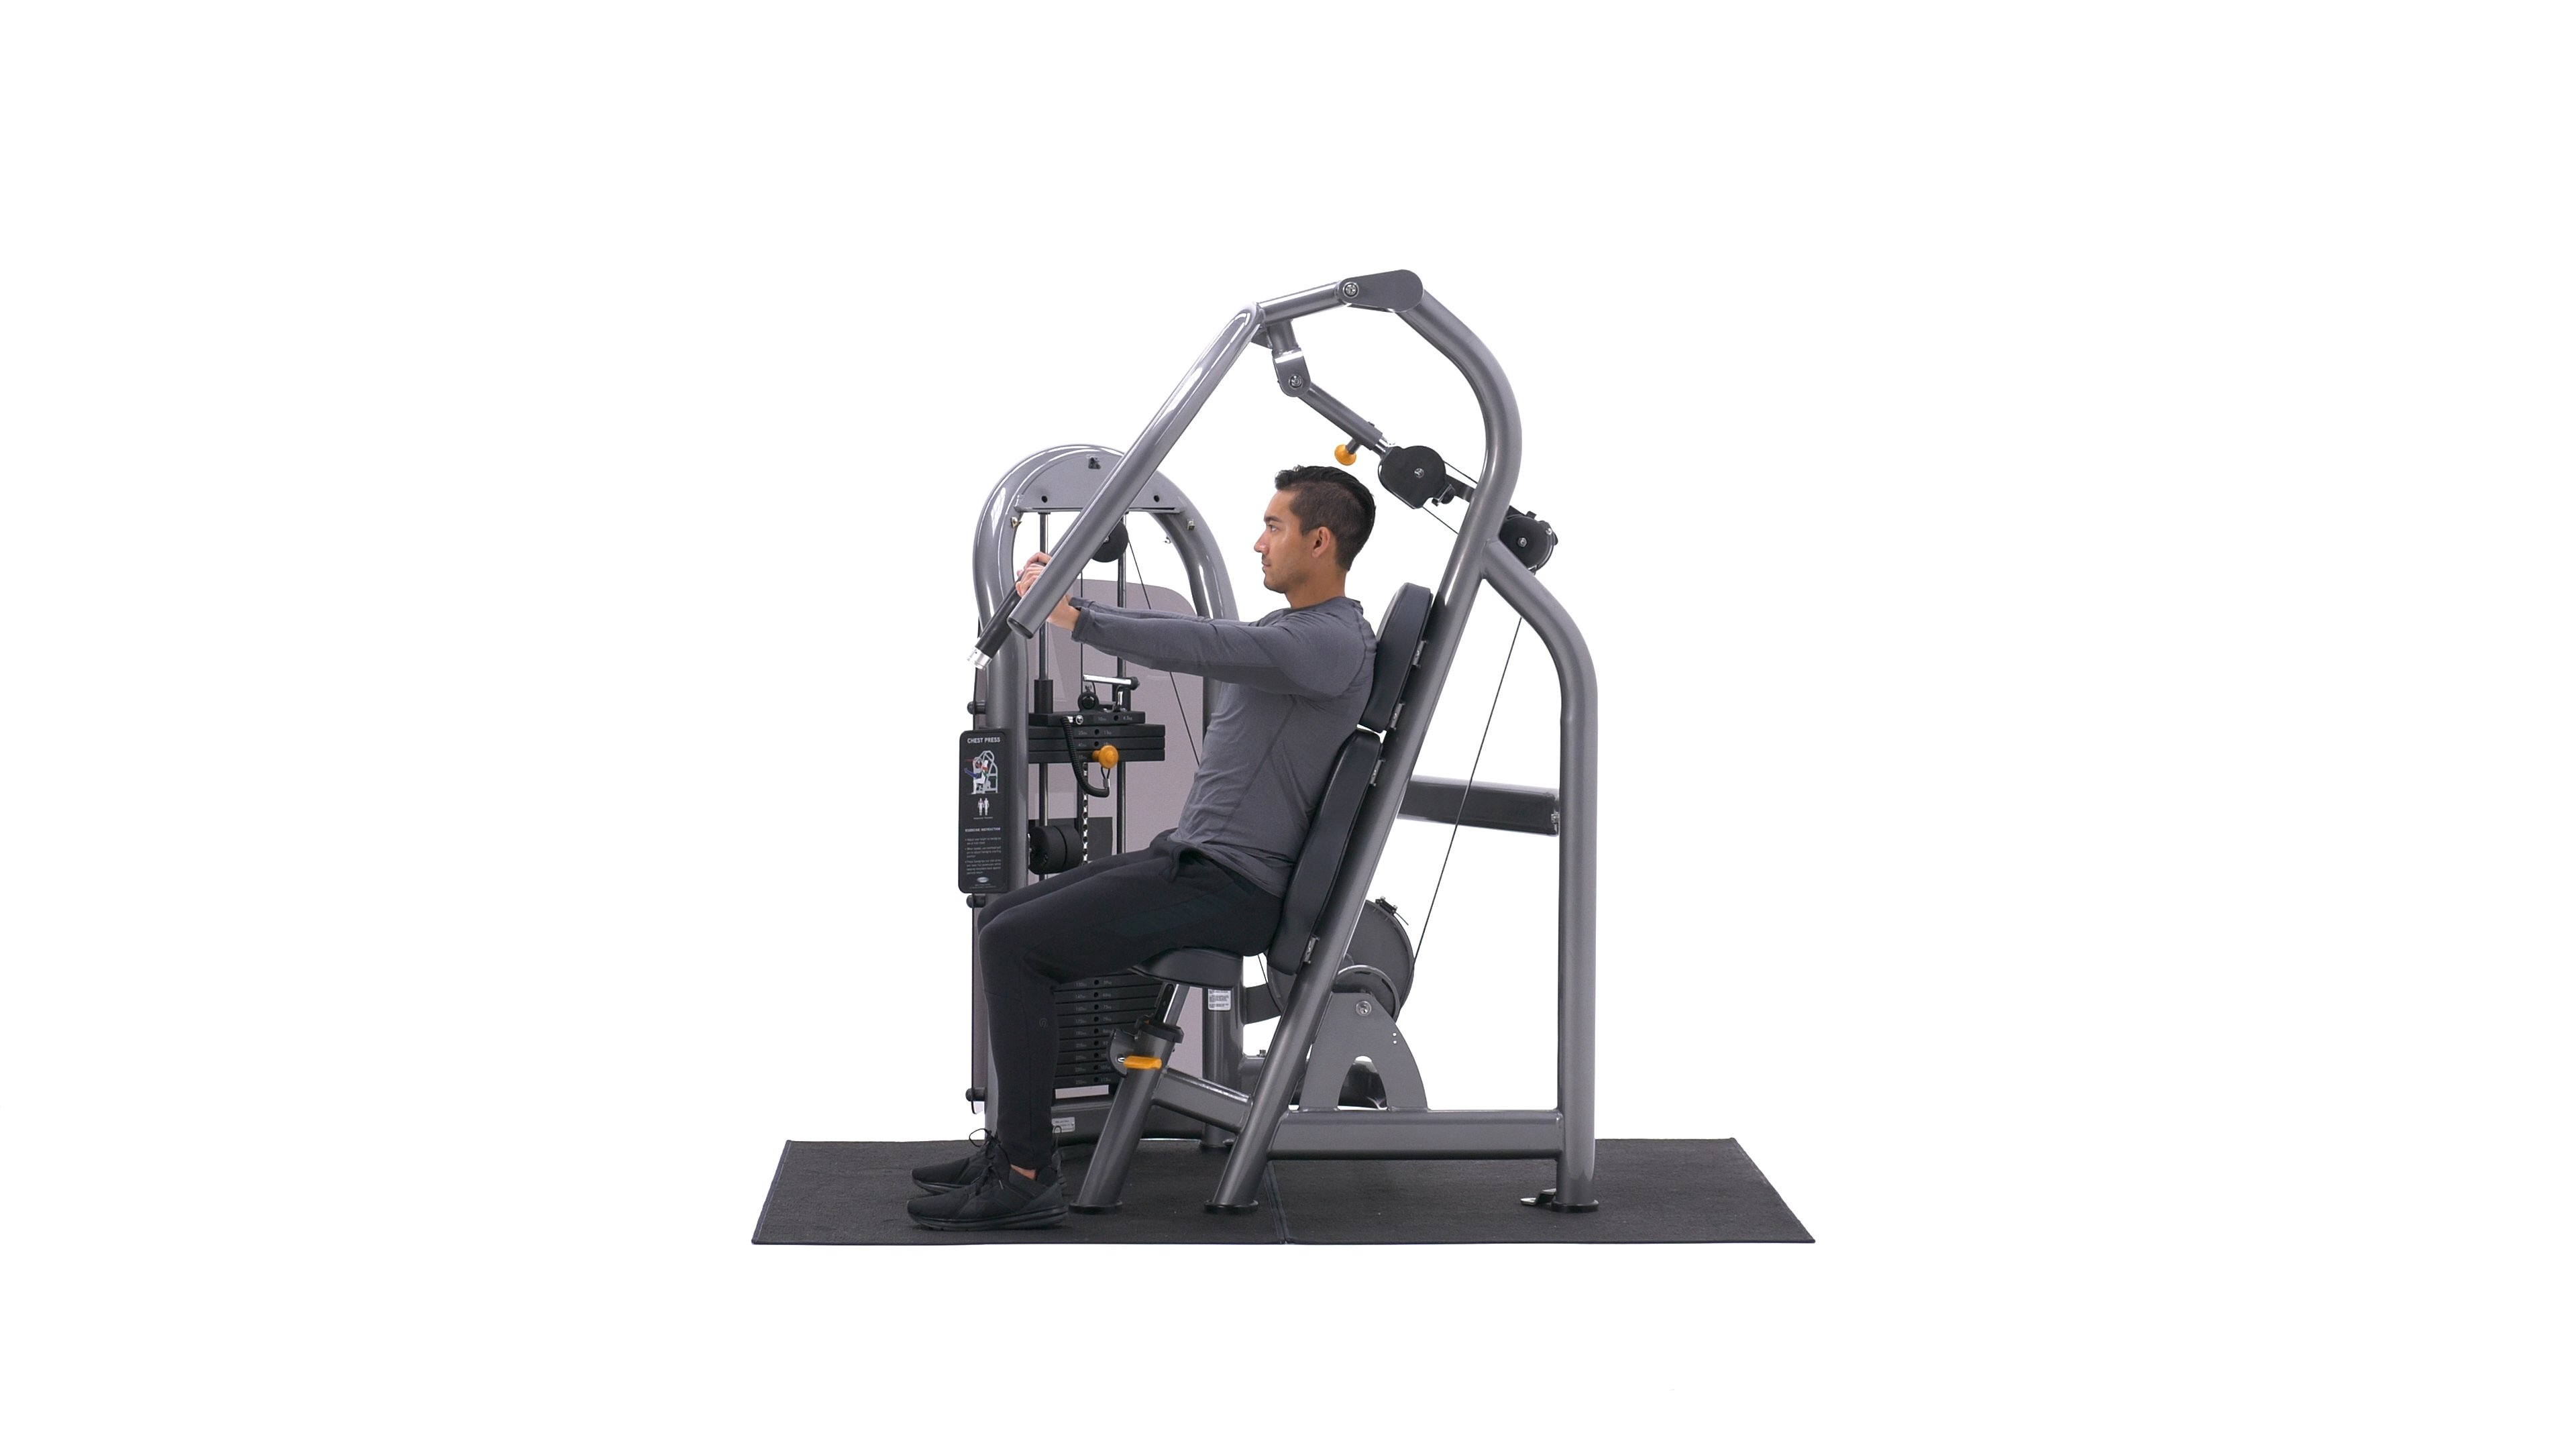 Machine Bench Press image